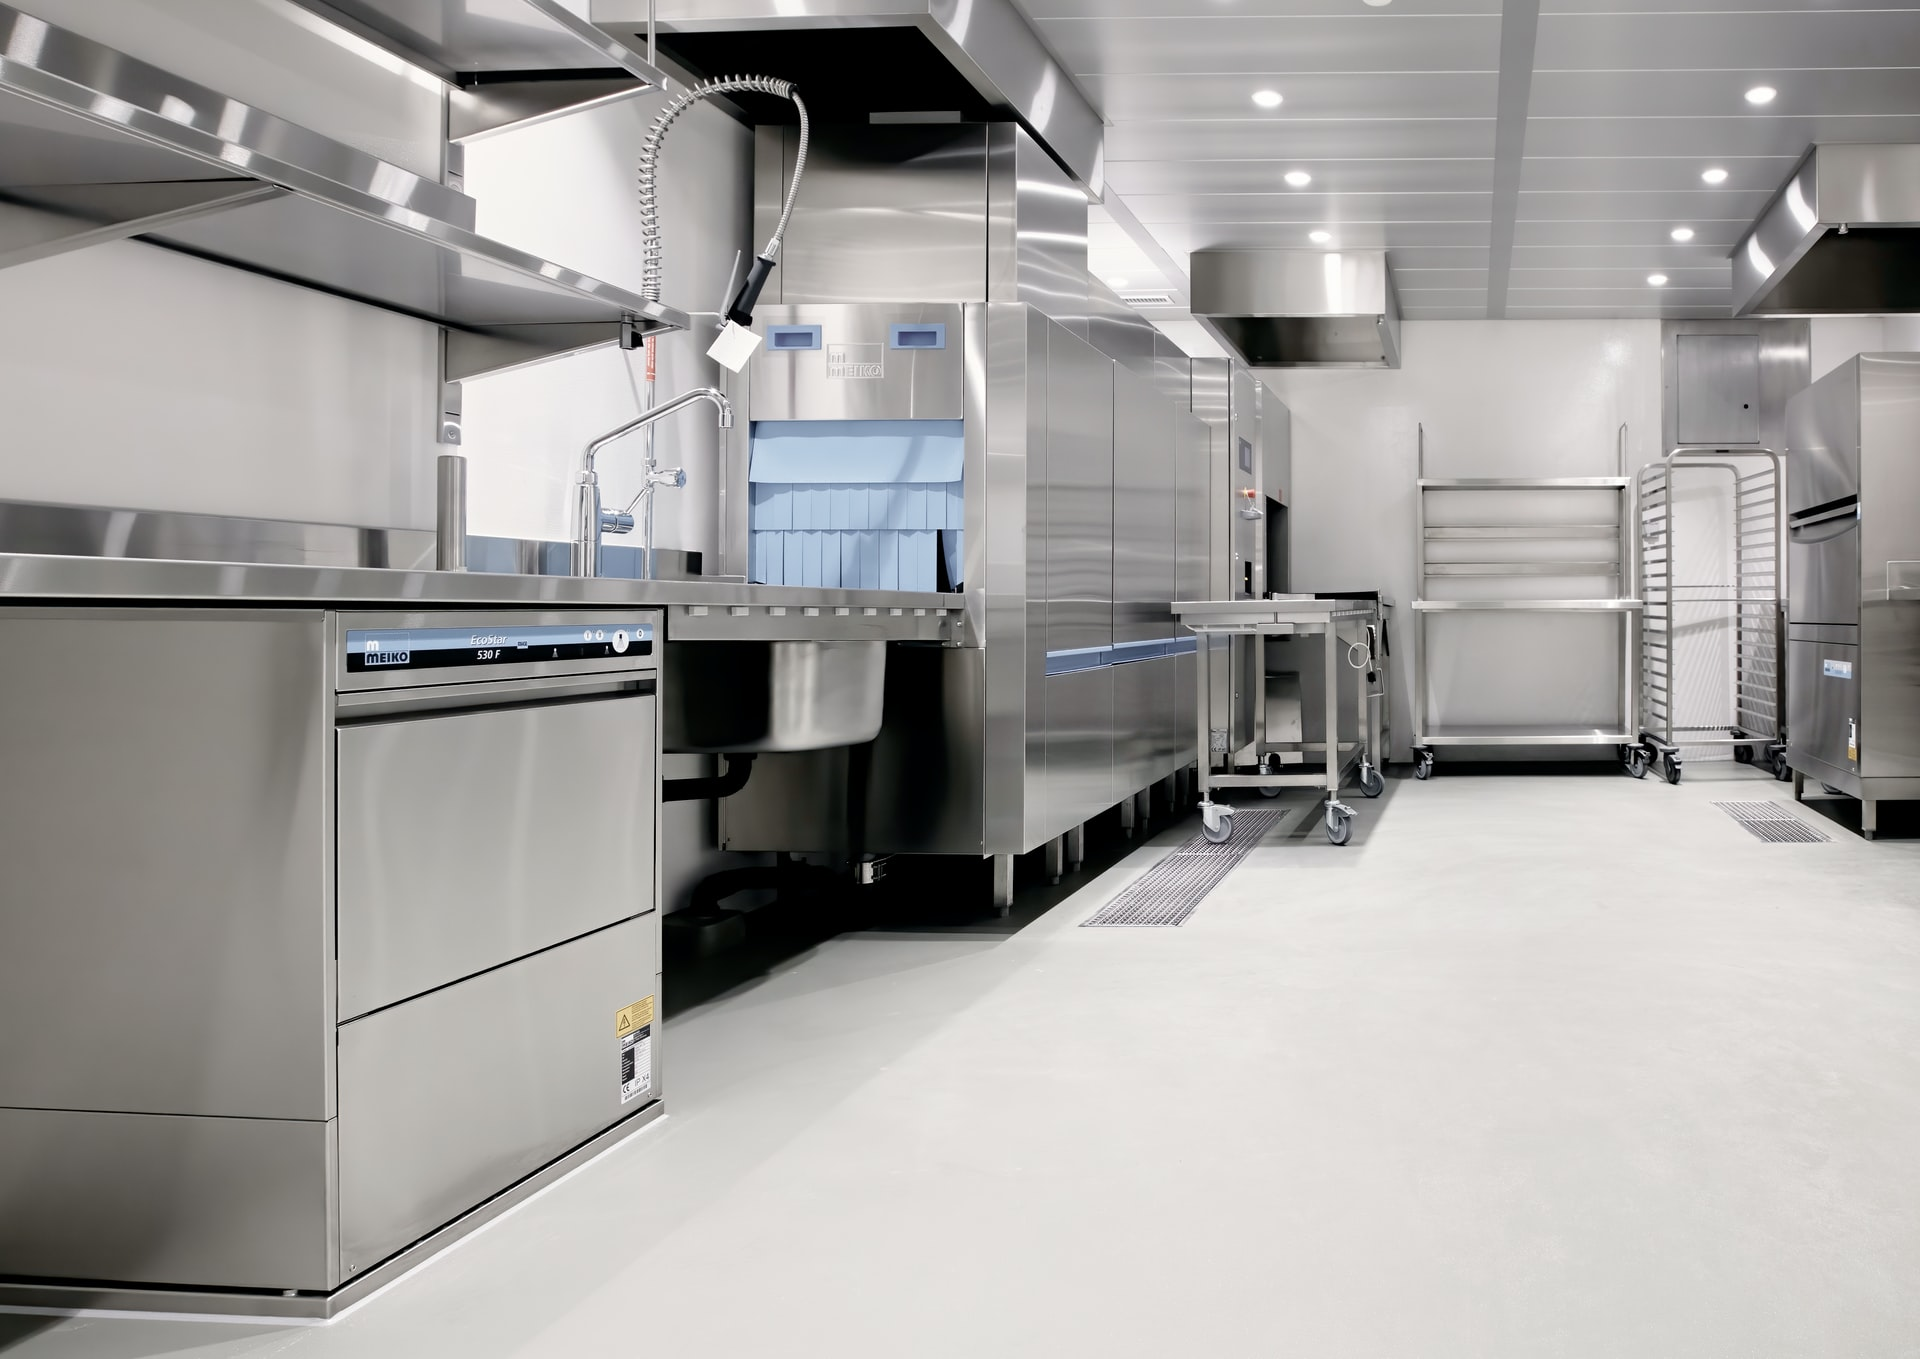 What is commercial kitchen cleaning